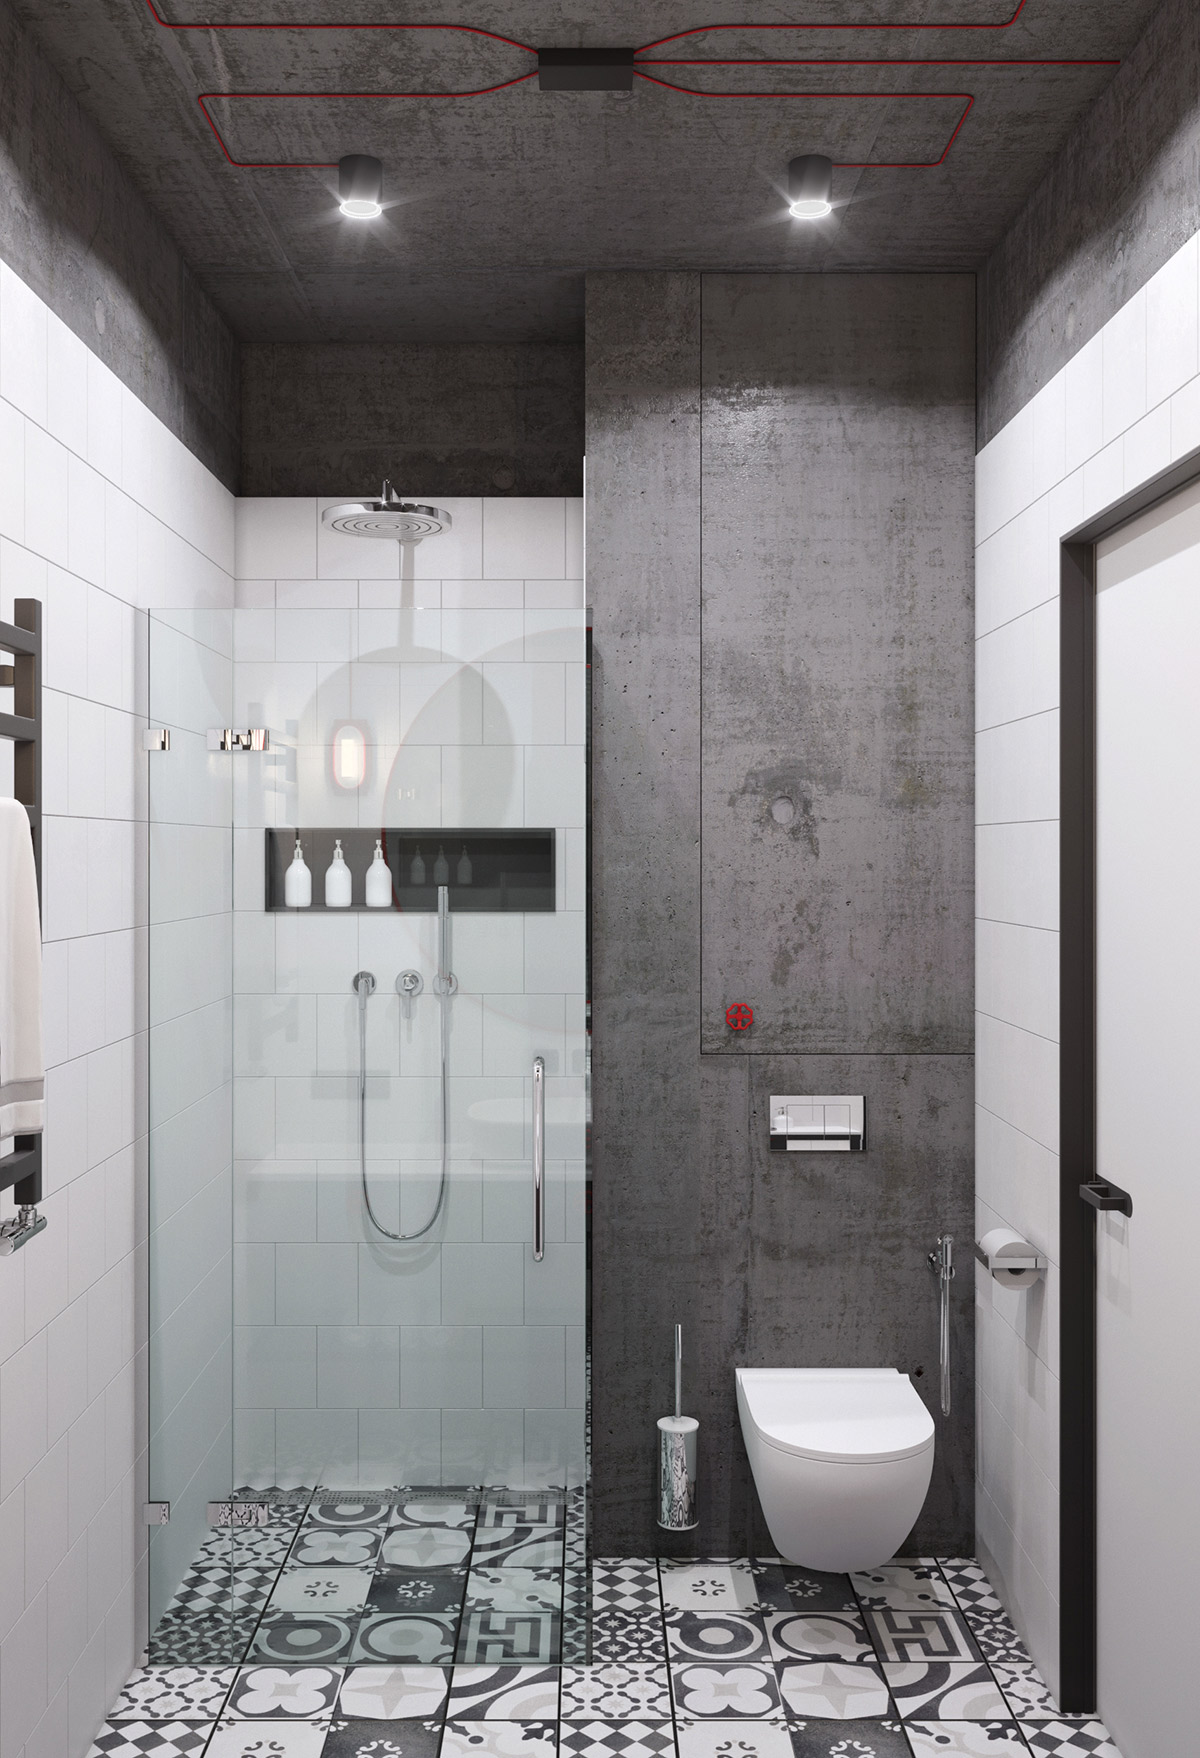 Concrete Modern Bathroom With Red Accents - 5 studio apartments with inspiring modern decor themes